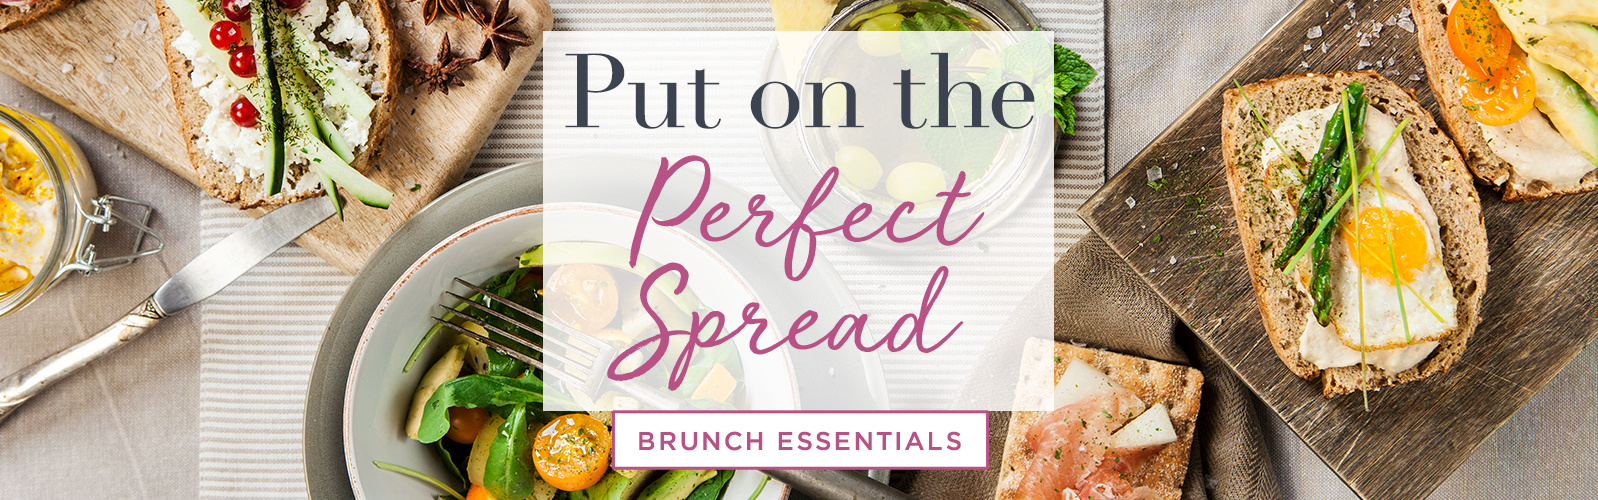 Put on the Perfect Spread. BRUNCH ESSENTIALS